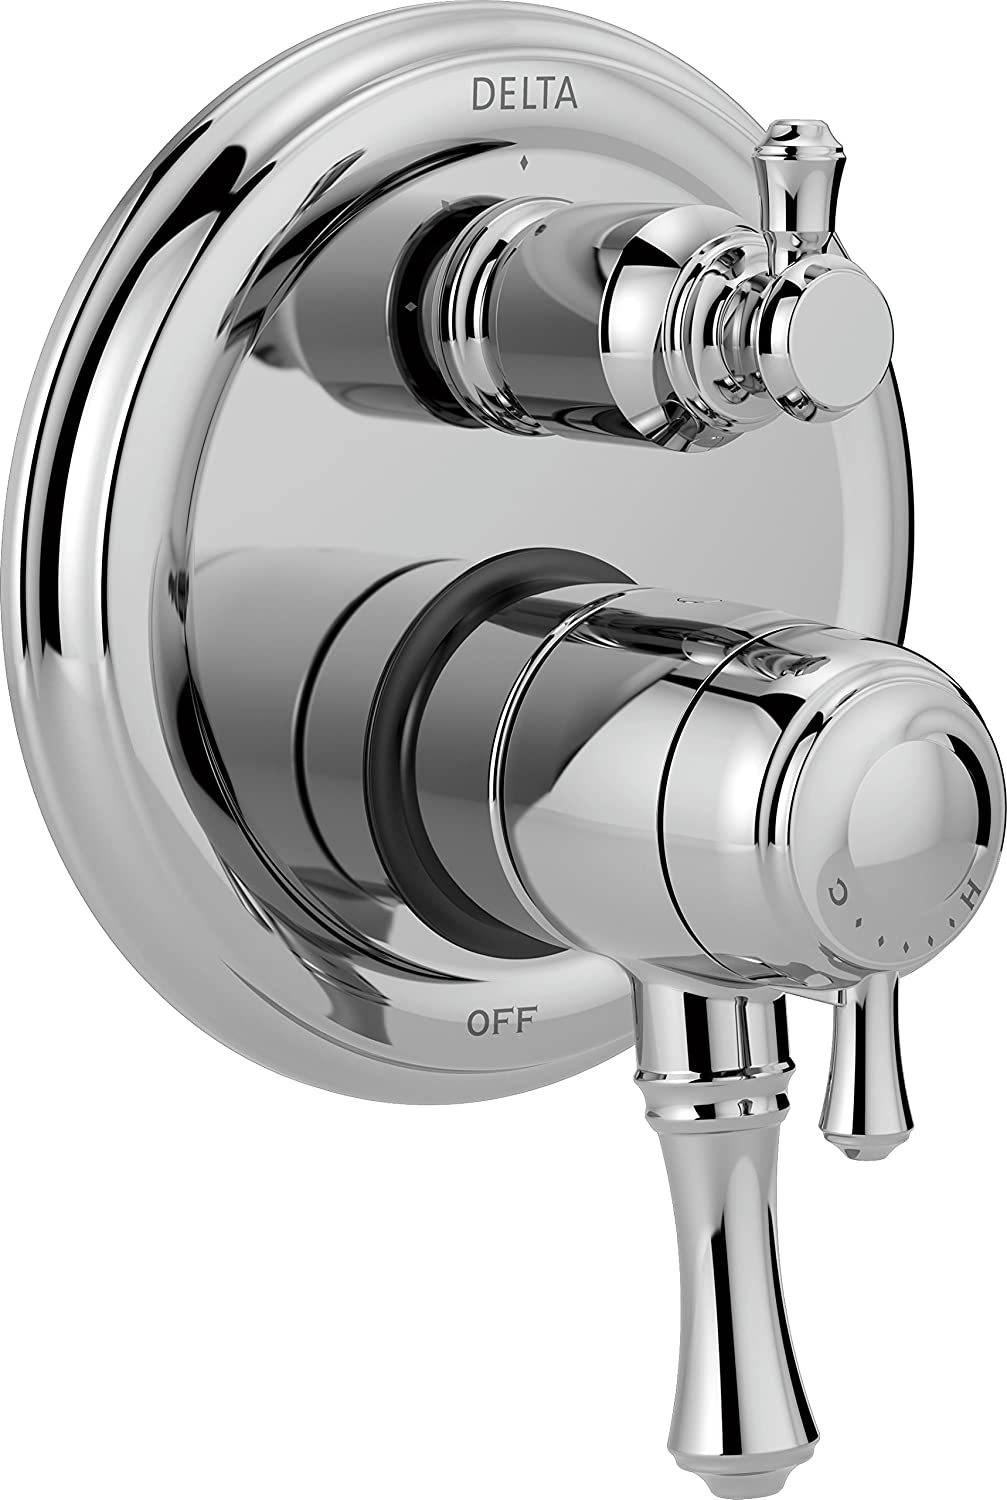 Delta shower faucet with separate volume and temperature controls lightweight hi vis shirts